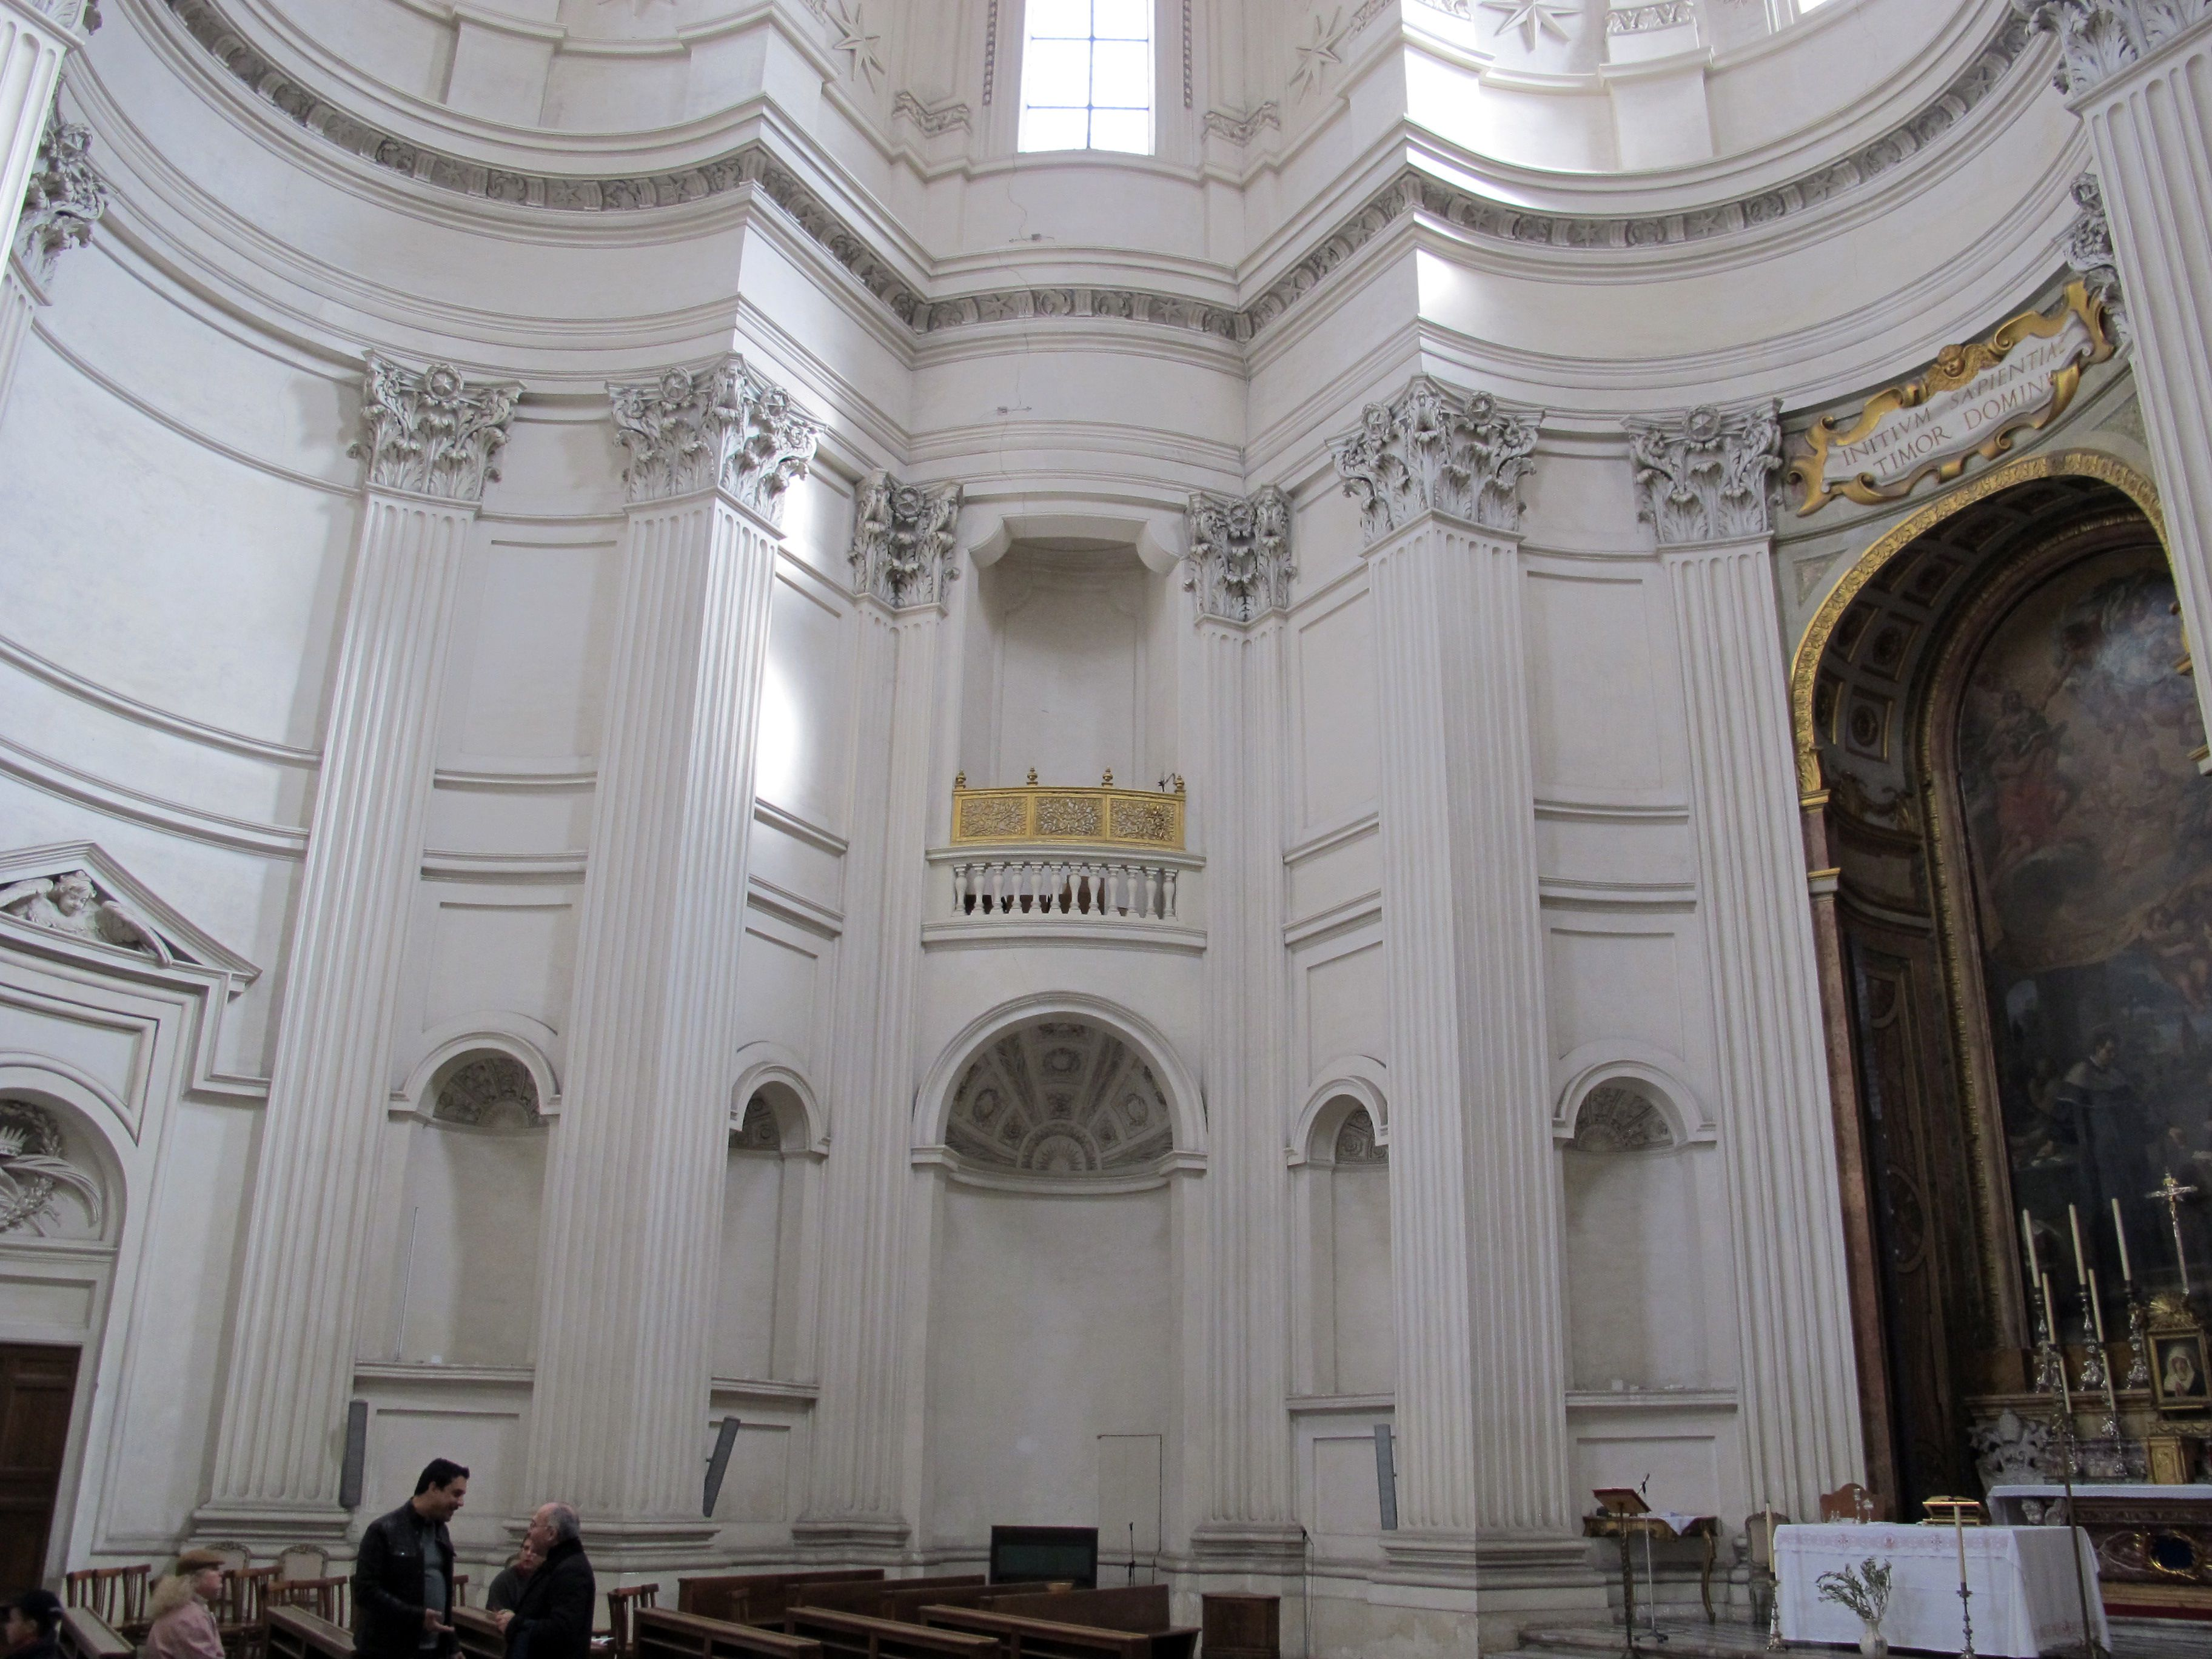 Italian baroque architecture borromini interior of sant for Italian baroque architecture